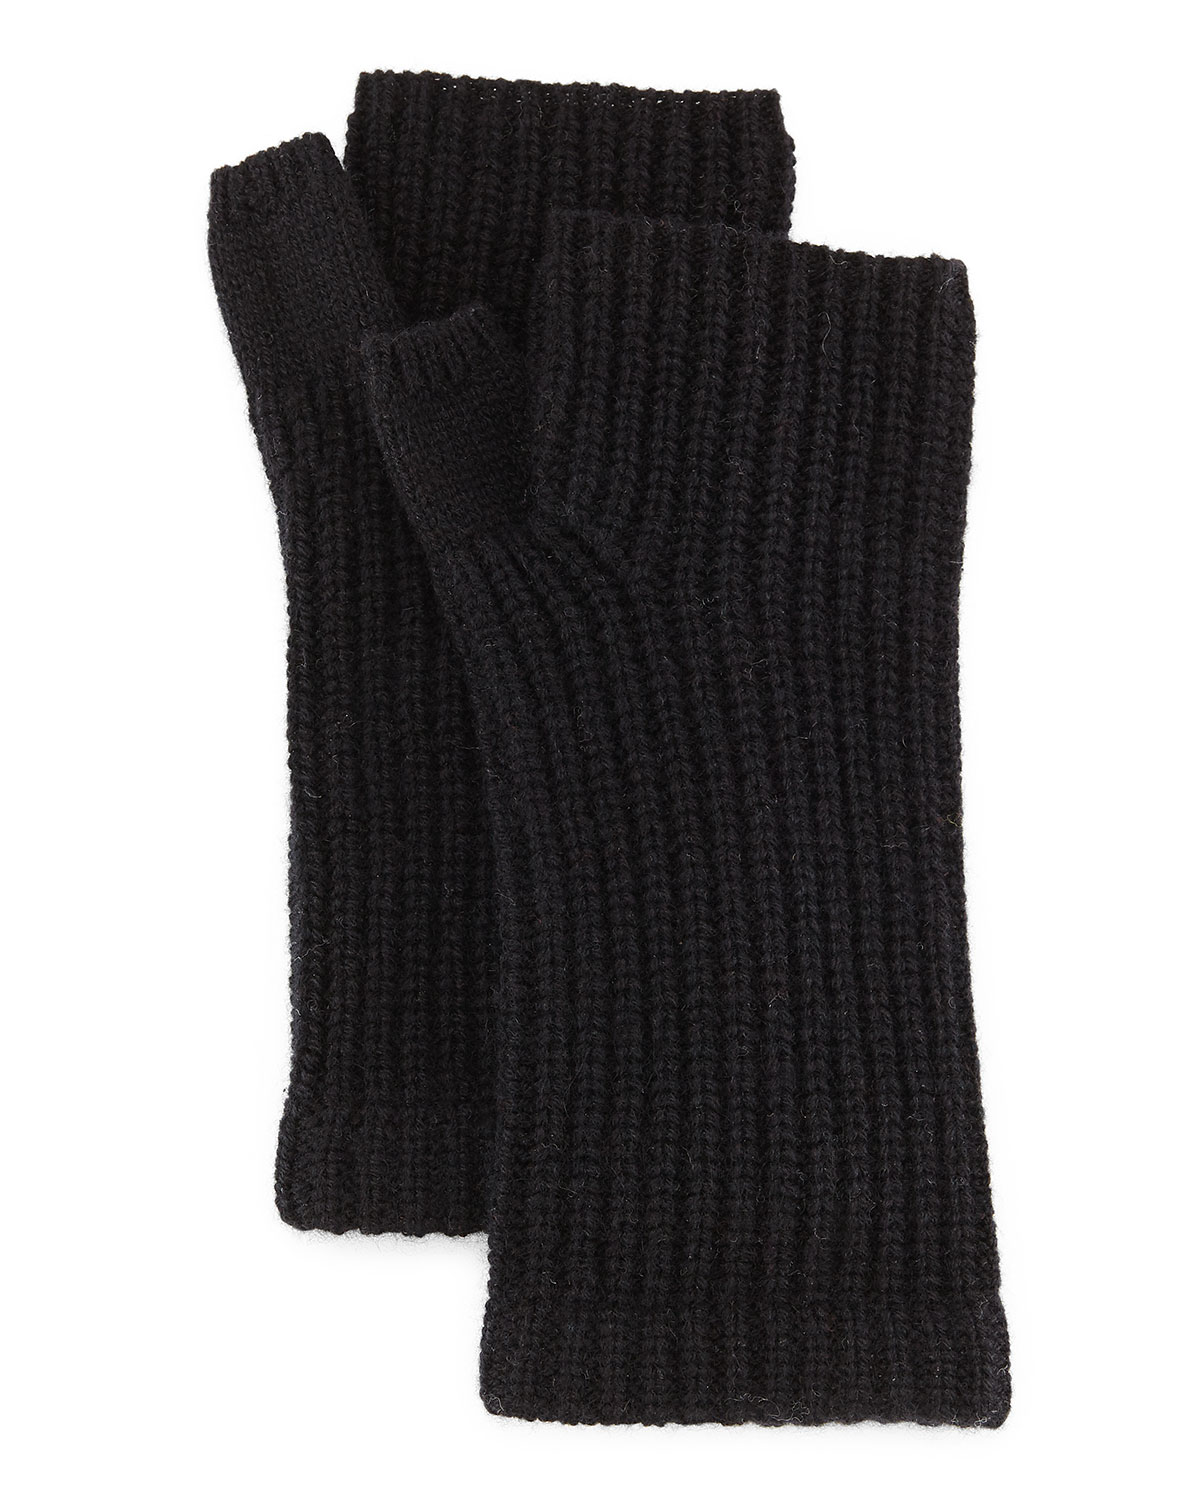 Alexis Cashmere Fingerless Gloves, Black - Rag & Bone